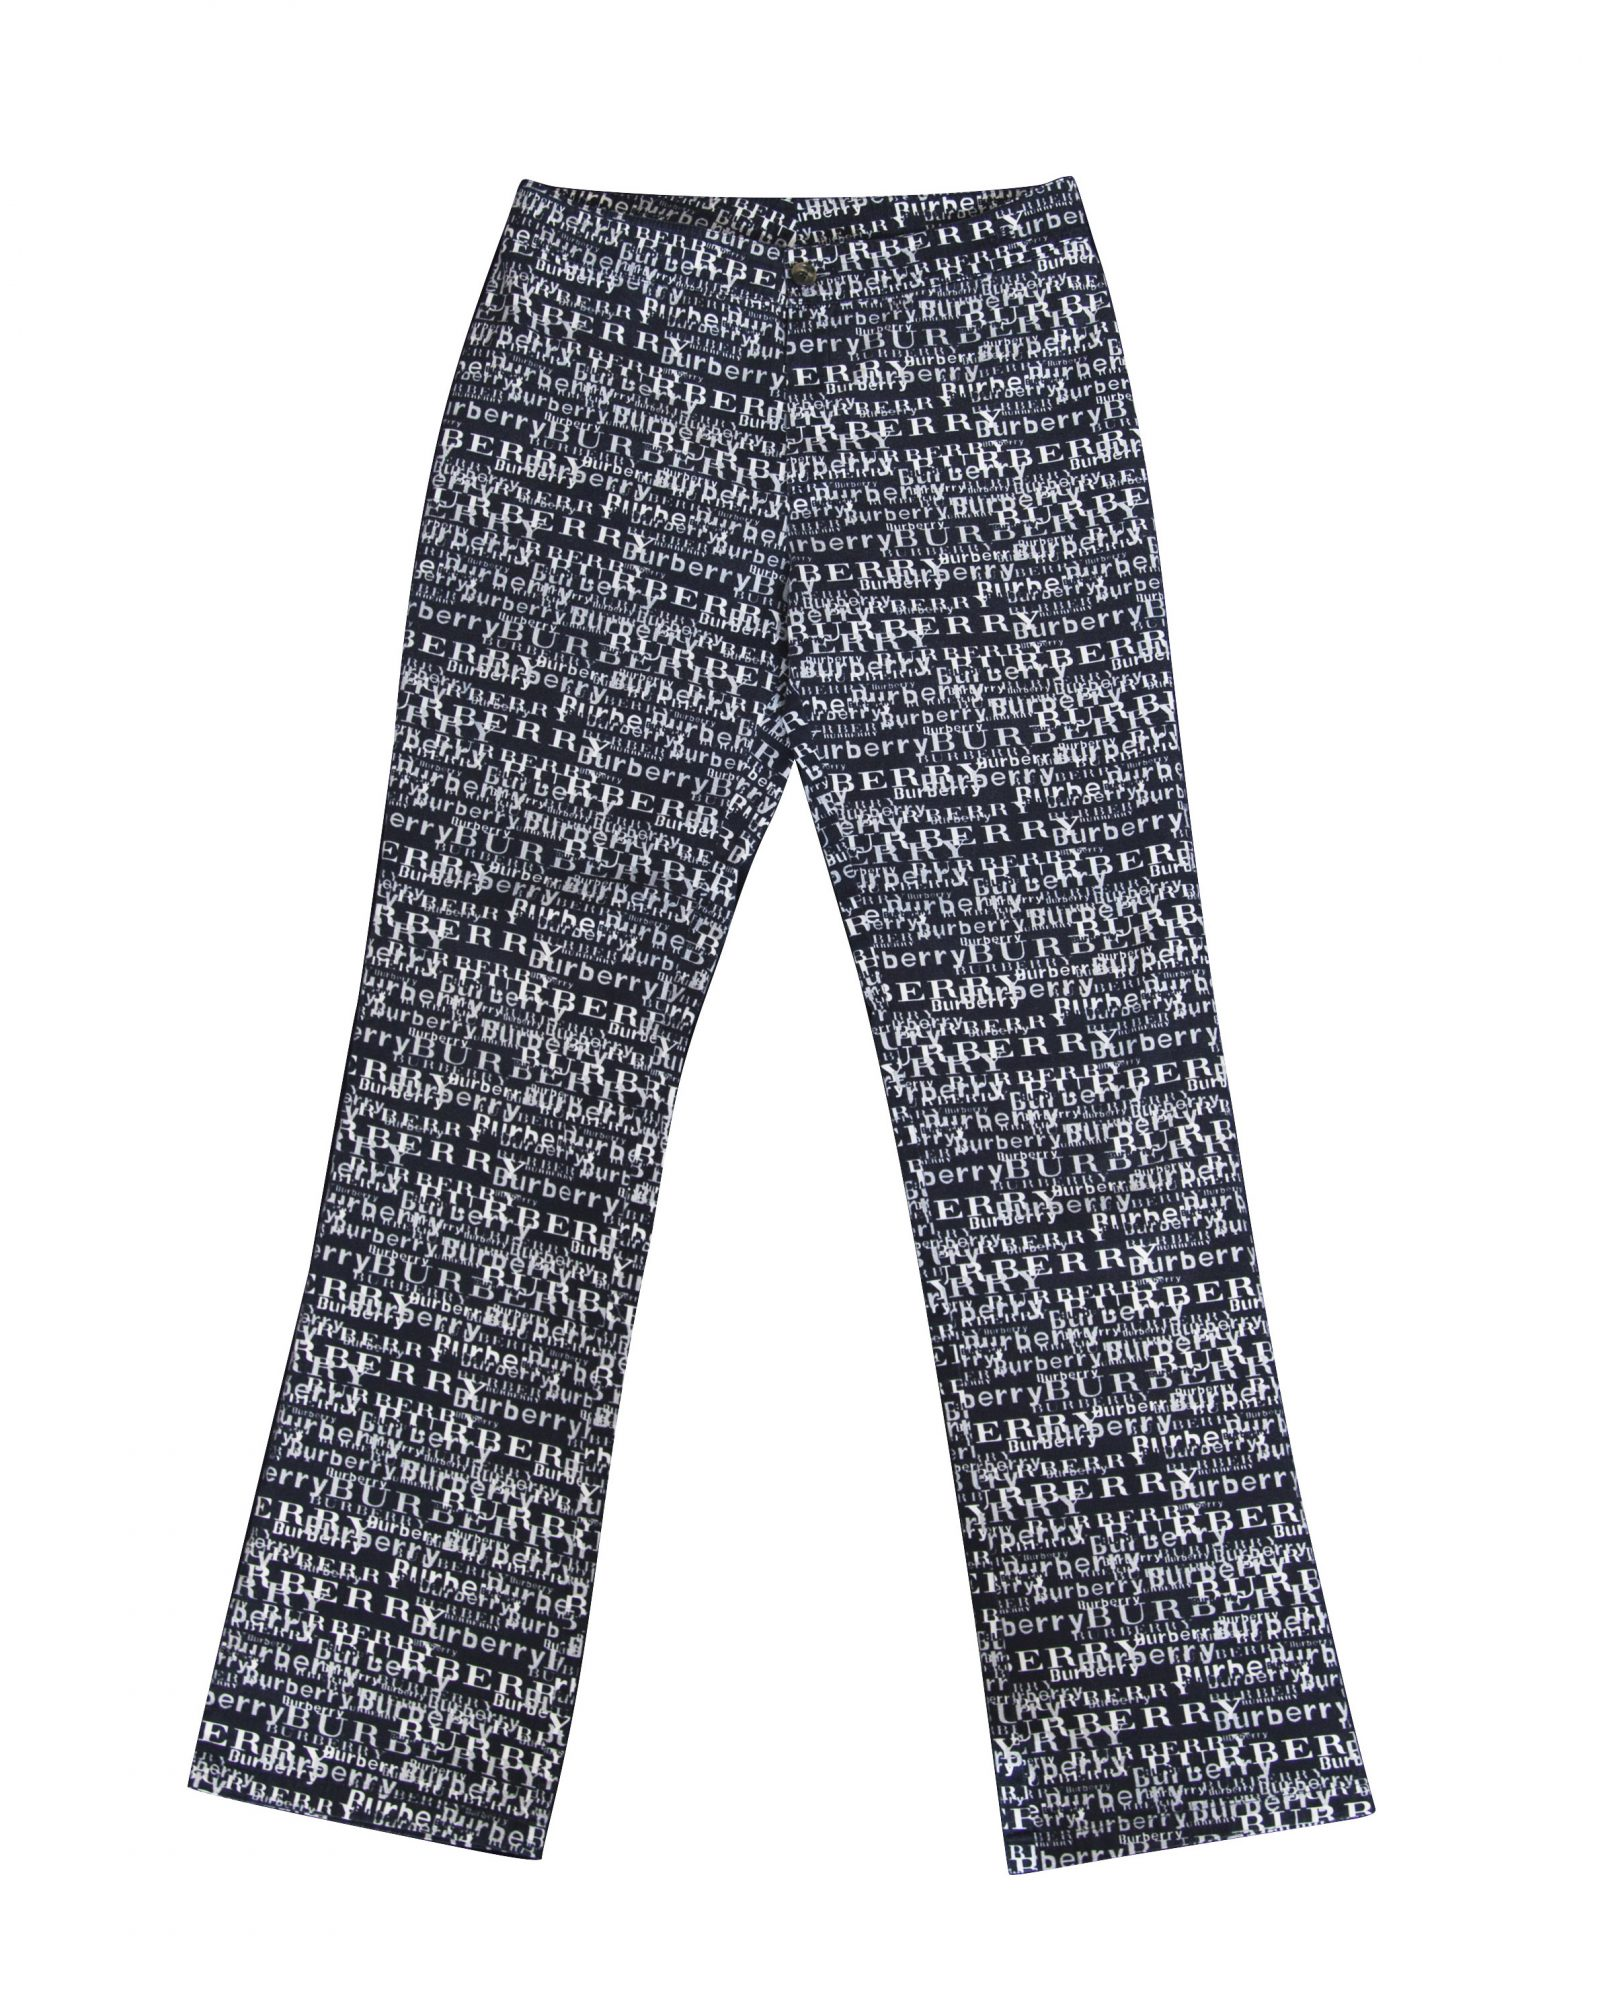 BURBERRY MONOGRAM PANTS PRODUCT PHOTO BY HOTMESS